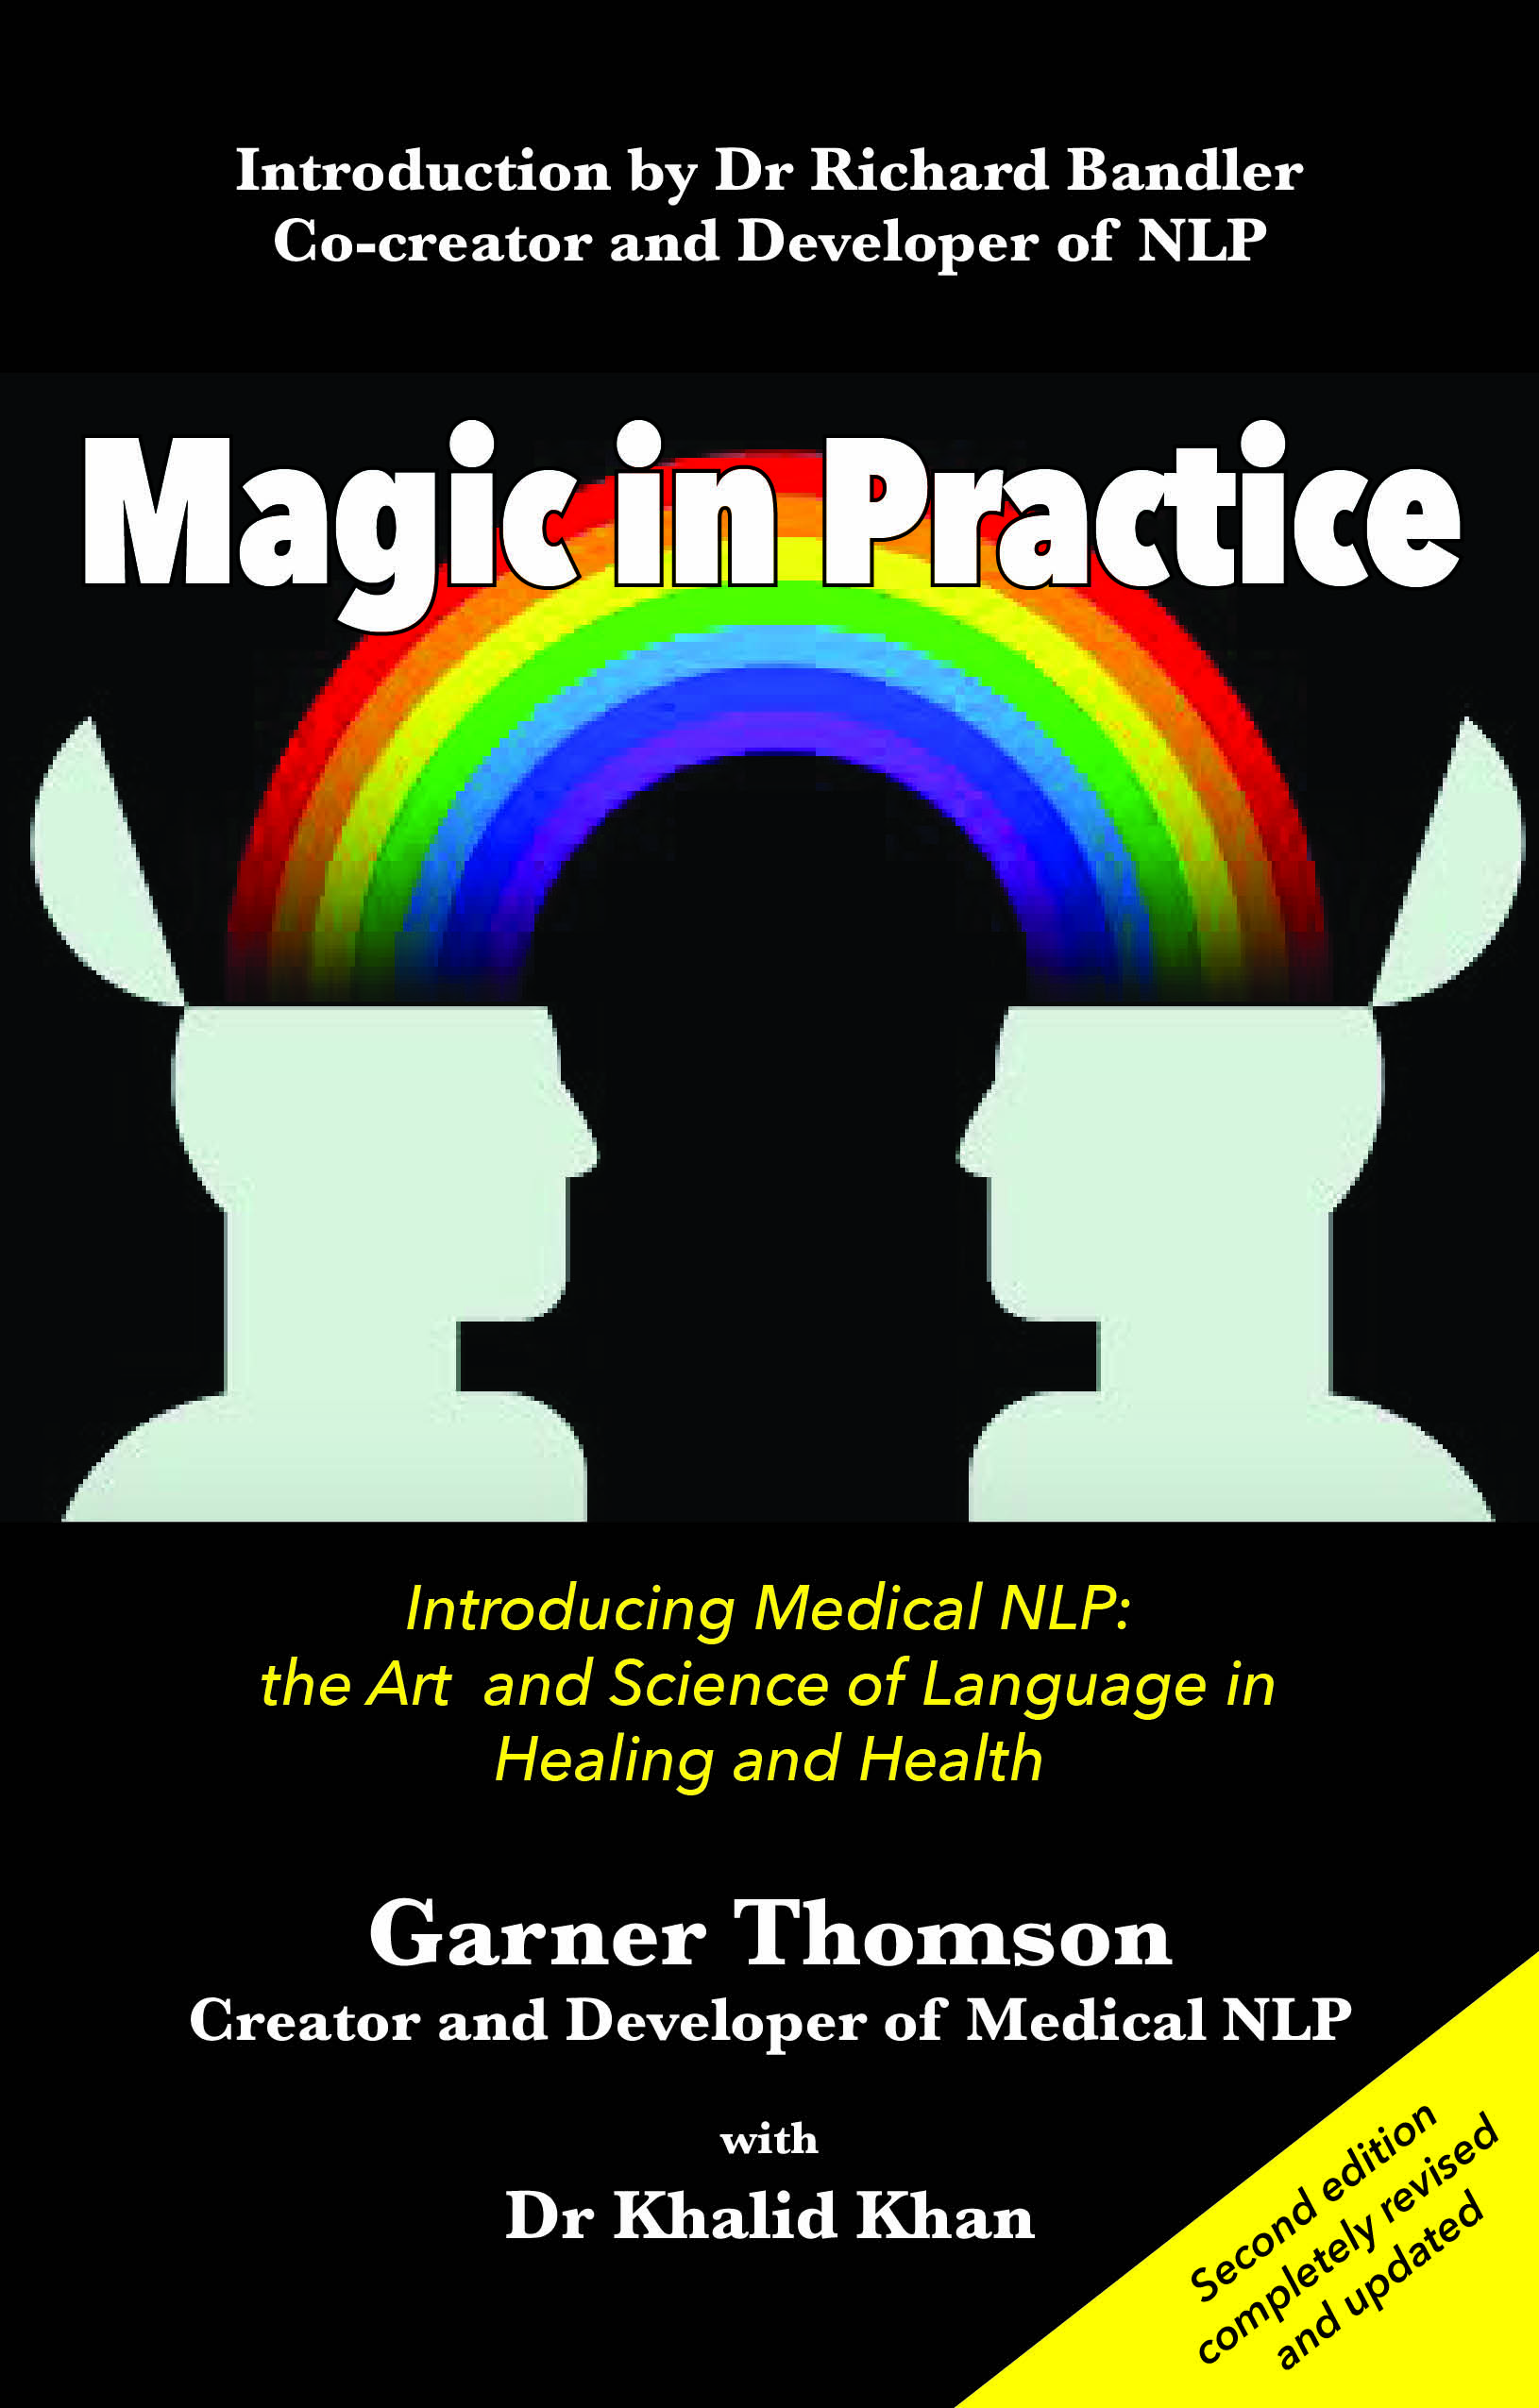 Magic in Practice - Introducing Medical NLP